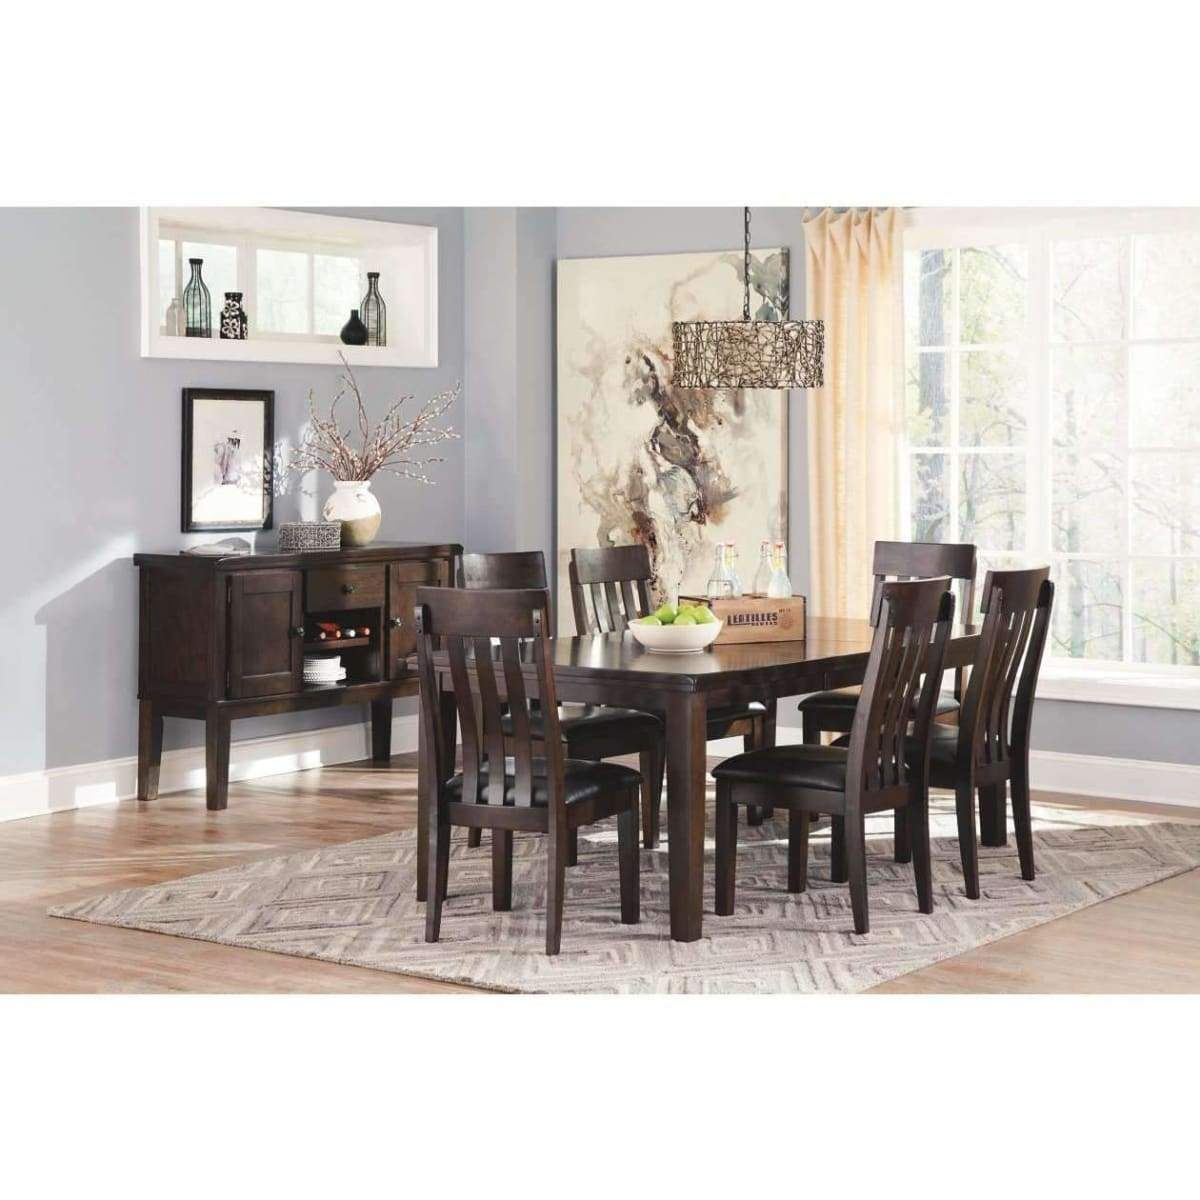 Haddigan 6pc Dining Room Set - DININGCOUNTERHEIGHT